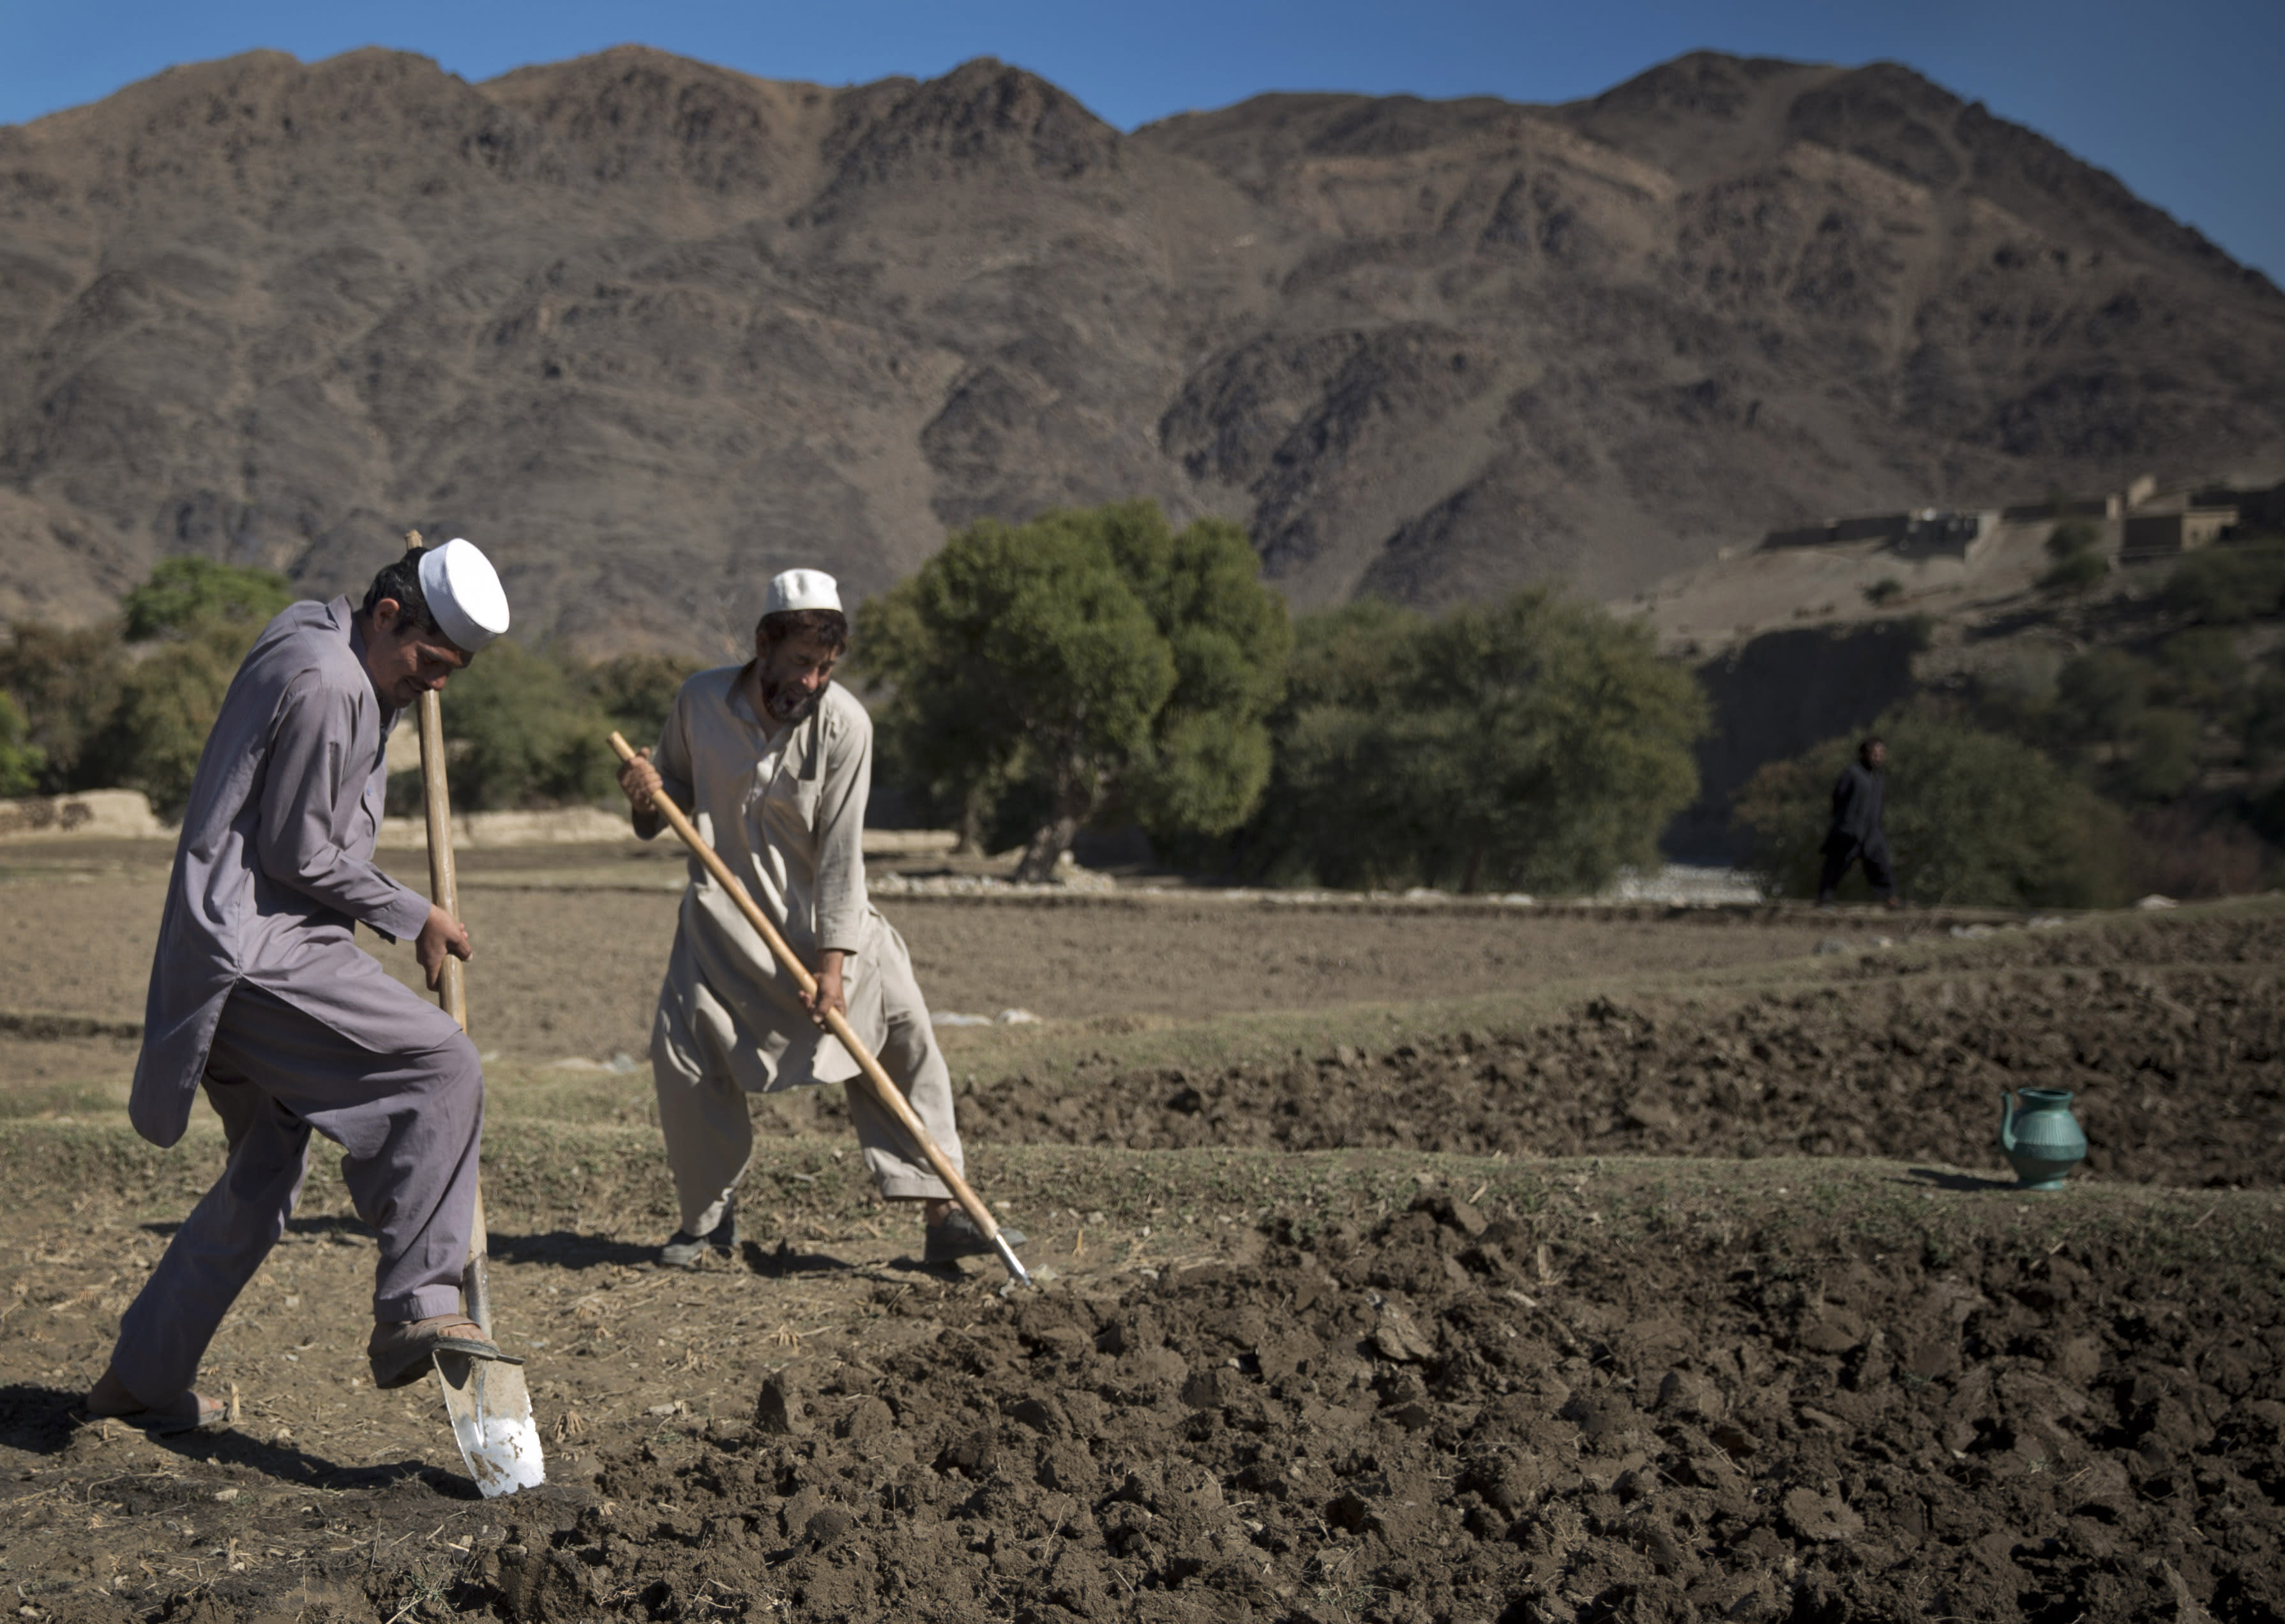 In this photo taken Tuesday, Nov. 12, 2013, Afghan poppy farmers prepare the soil for their poppy seeds in fields in Cham Kalai village in Afghanistan's eastern Nangarhar province, an area which is largely controlled by Taliban. Afghanistan's opium production surged in 2013 to record levels, despite 12 years of international efforts to wean the country off the narcotics trade, according to a report released Wednesday by the U.N.'s drug control agency. (AP Photo/Anja Niedringhaus)